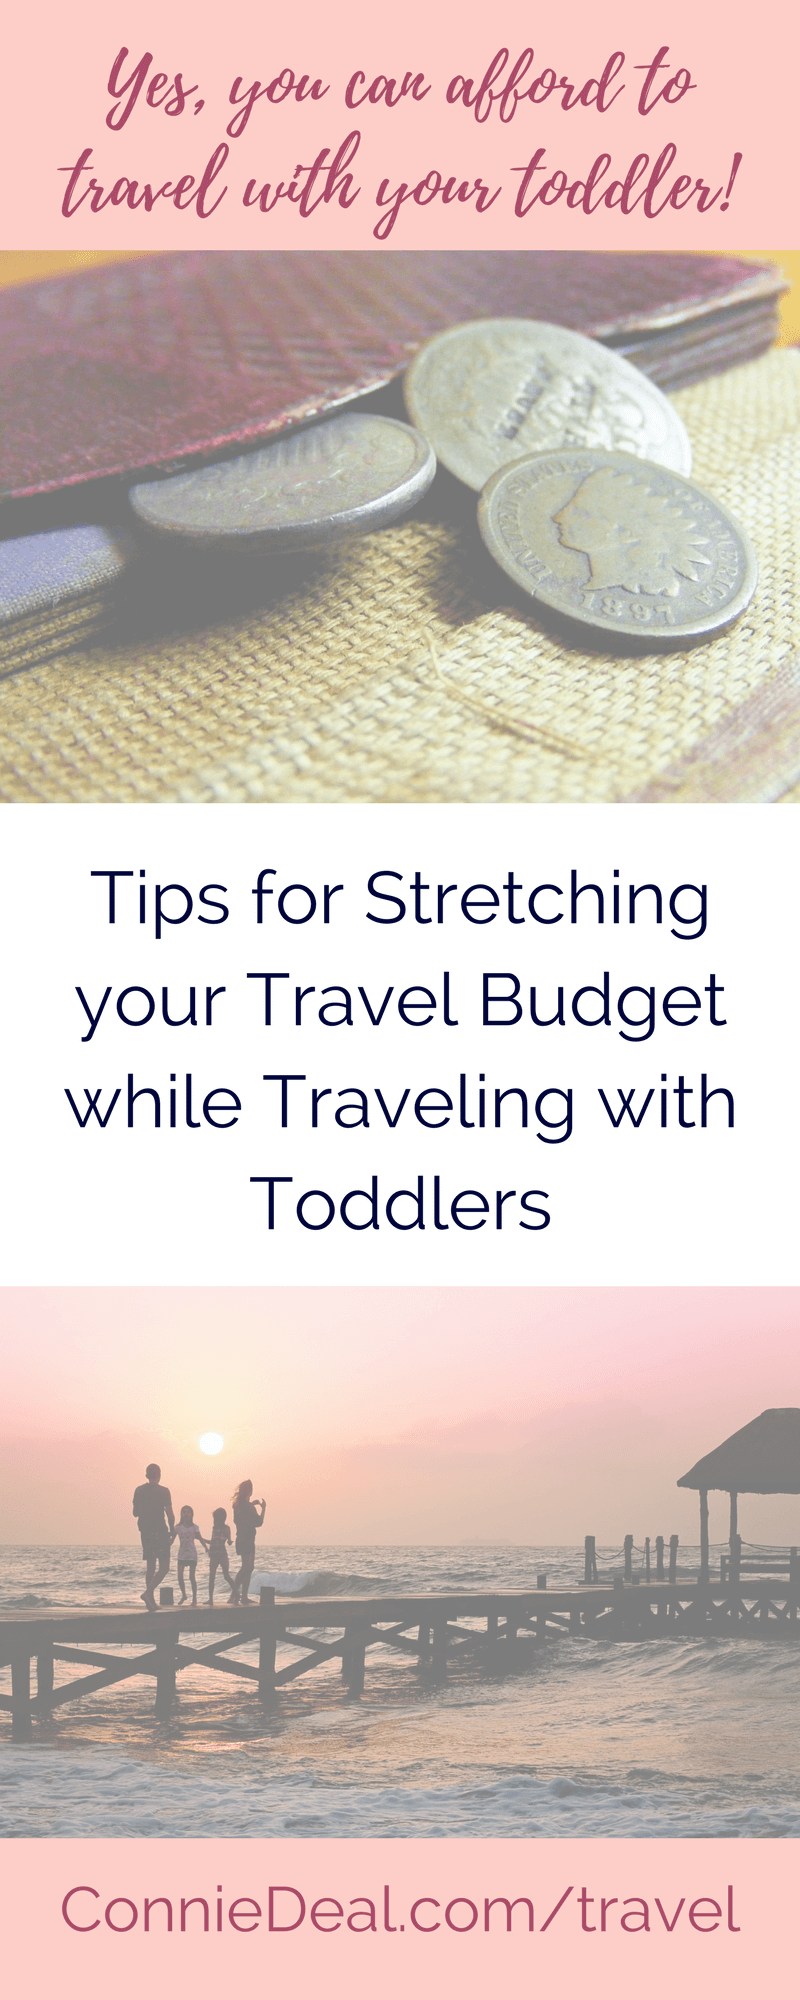 Going on vacation and traveling with kids can be expensive. But, there are ways to save money while #travelingwithtoddlers! Find out some of my best (and easiest!) tips for stretching your travel budget while hitting the road or flying high with toddlers. #summervacation #springbreaktravel #traveltips #travelbudget